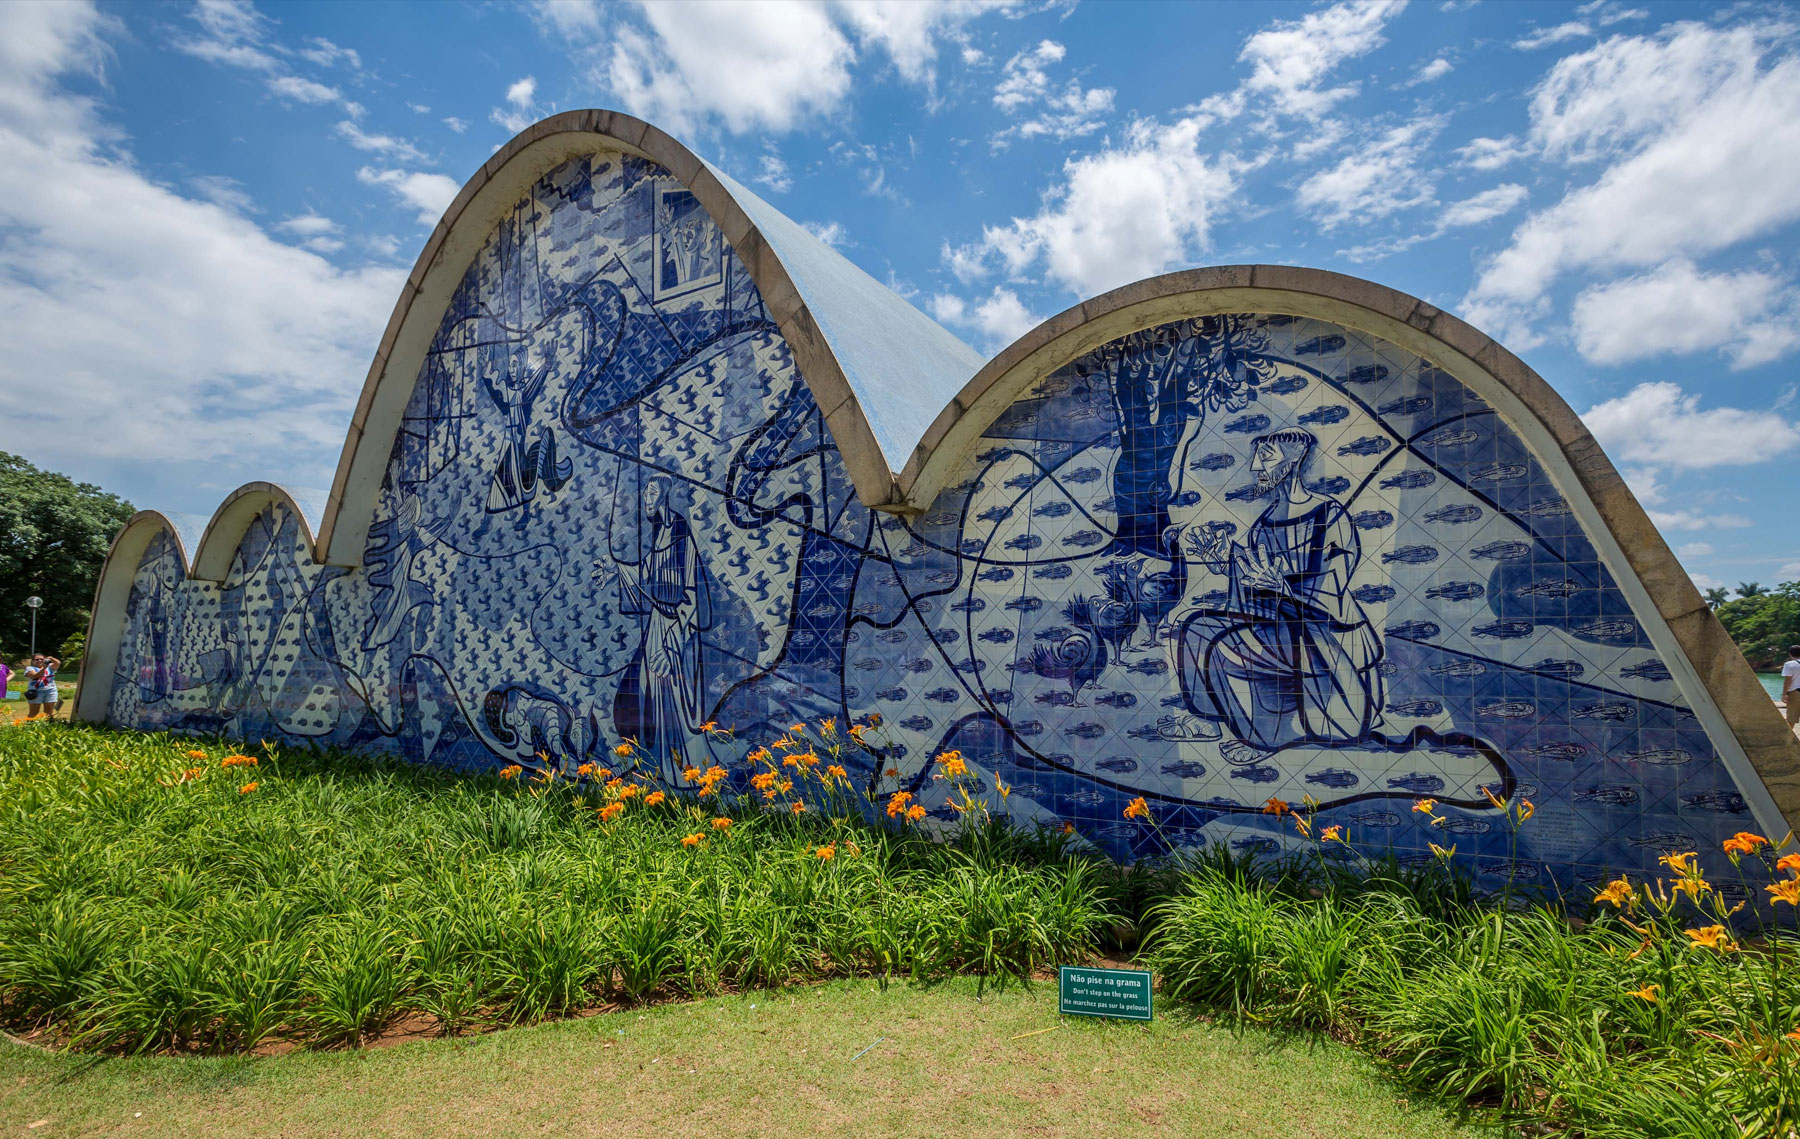 11 Best Things To Do In Belo Horizonte, Brazil